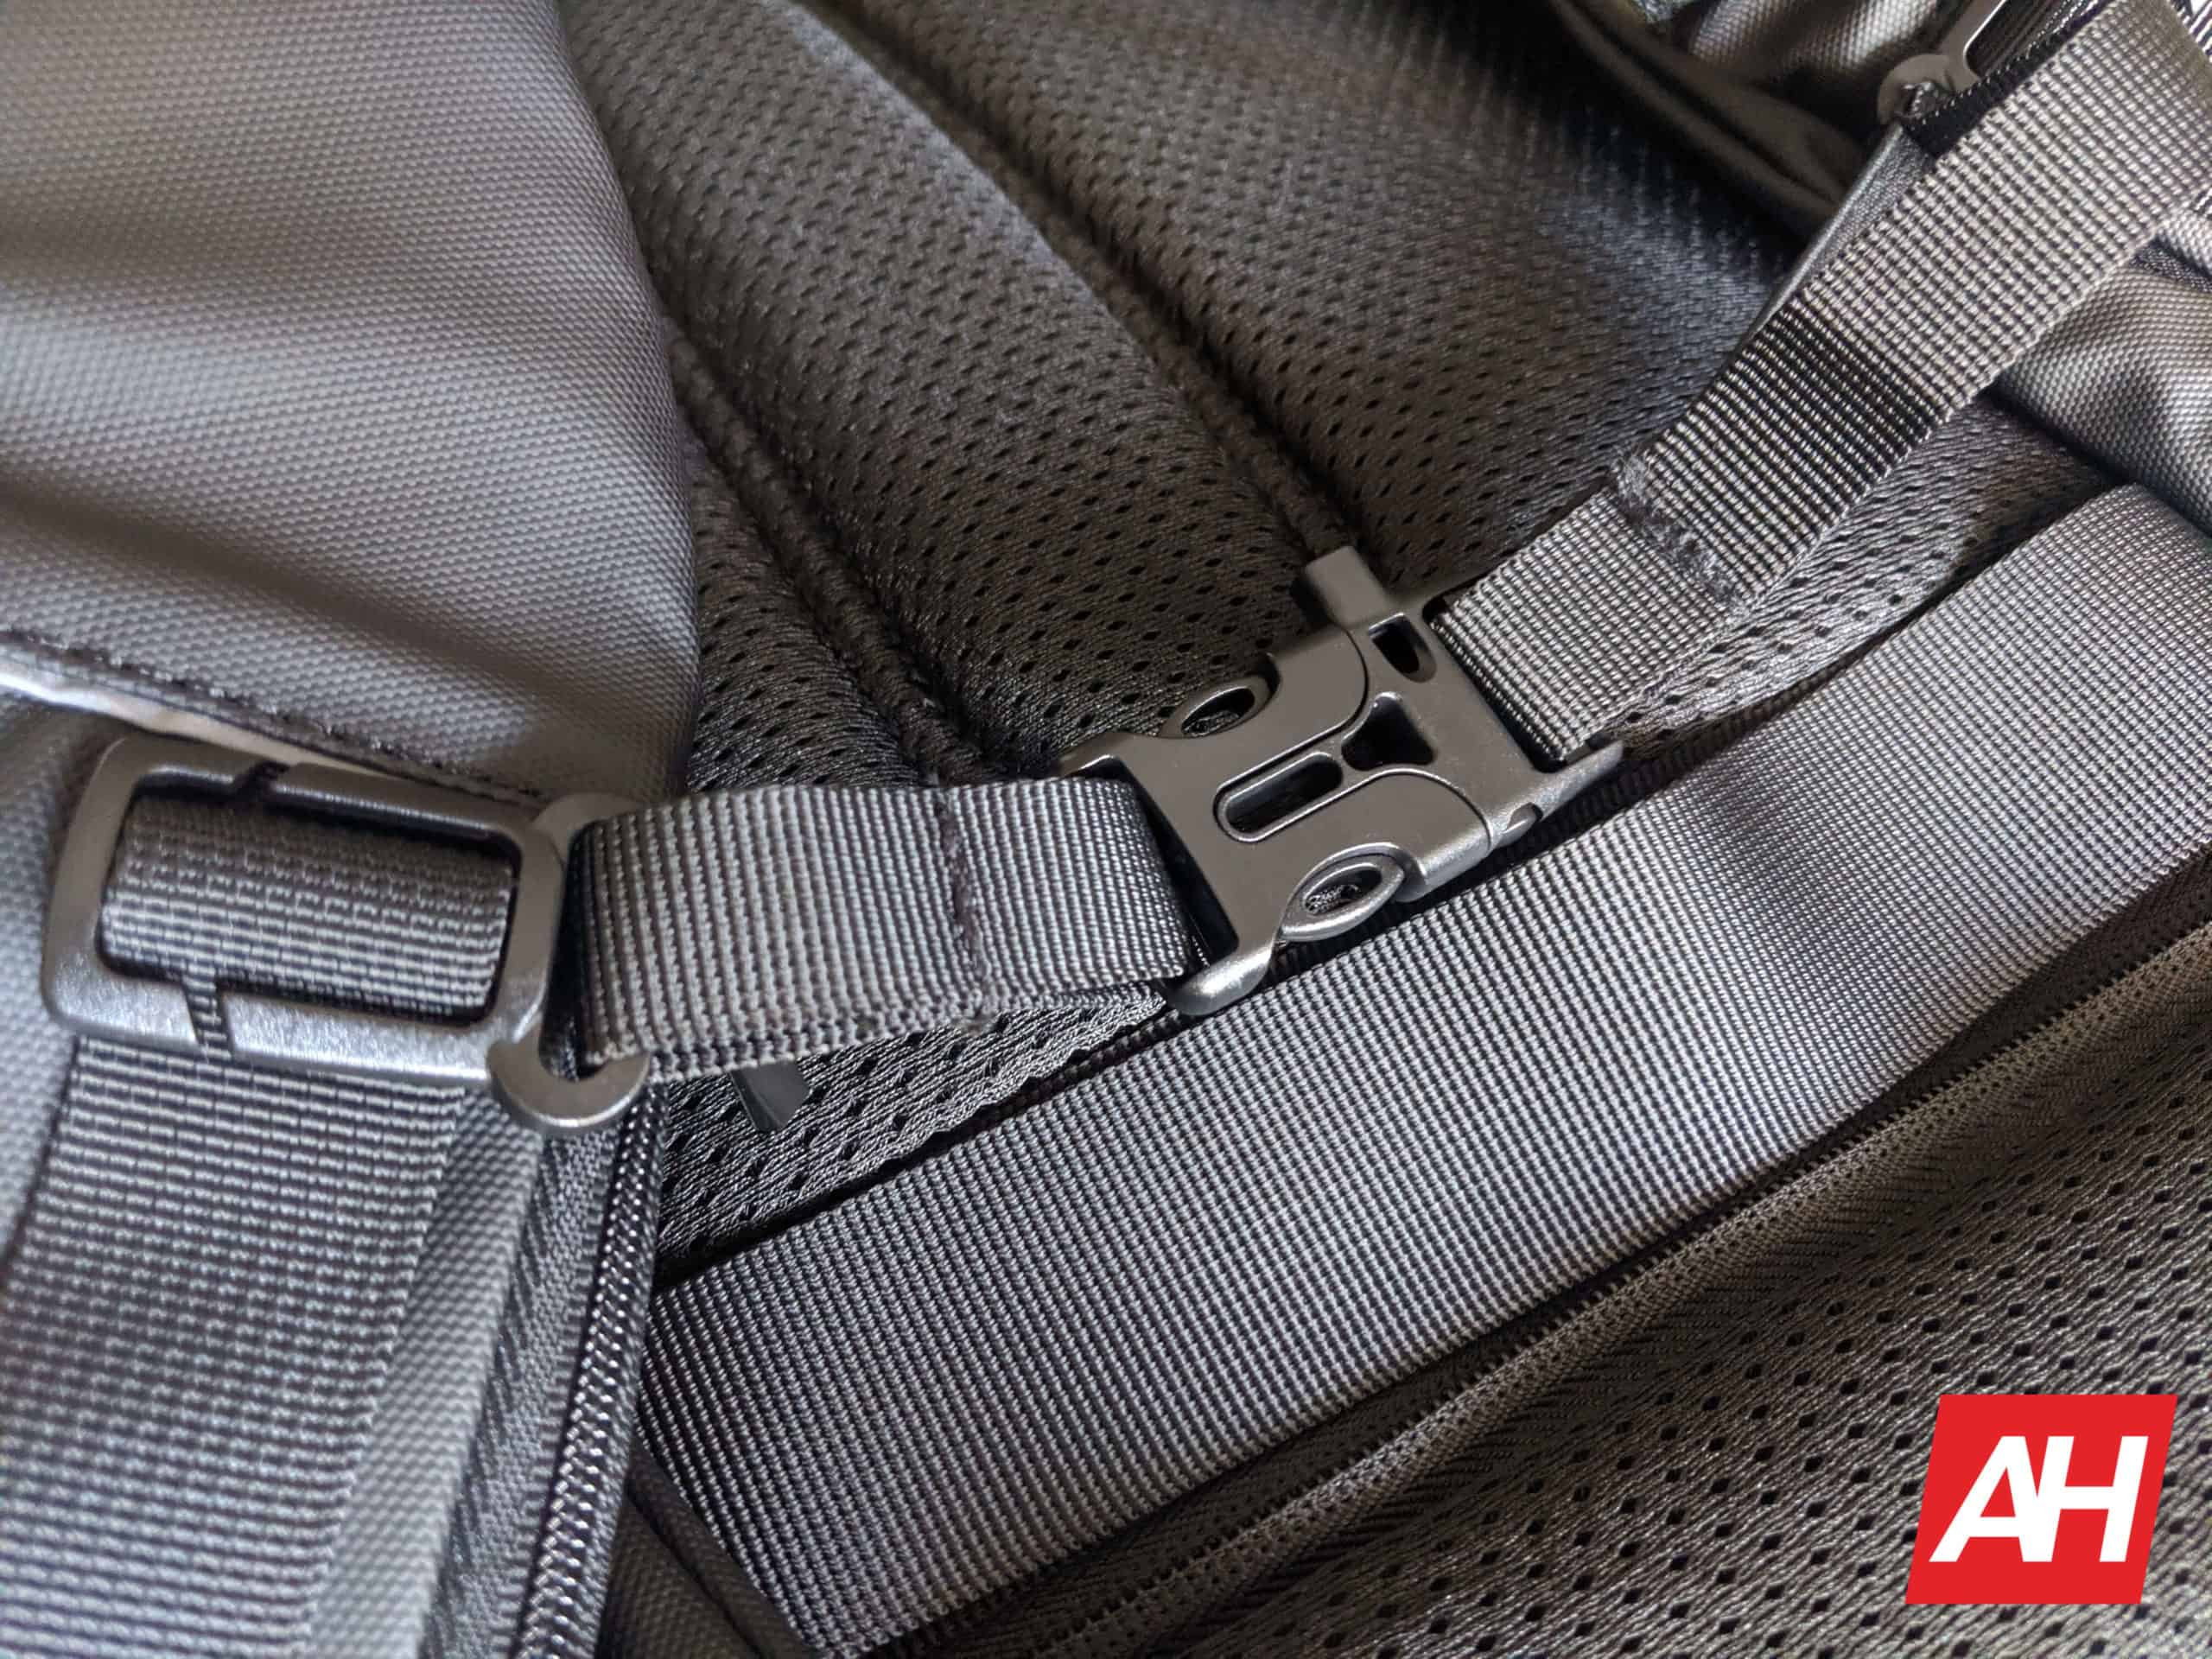 Nayo Smart Almighty Backpack Review 9